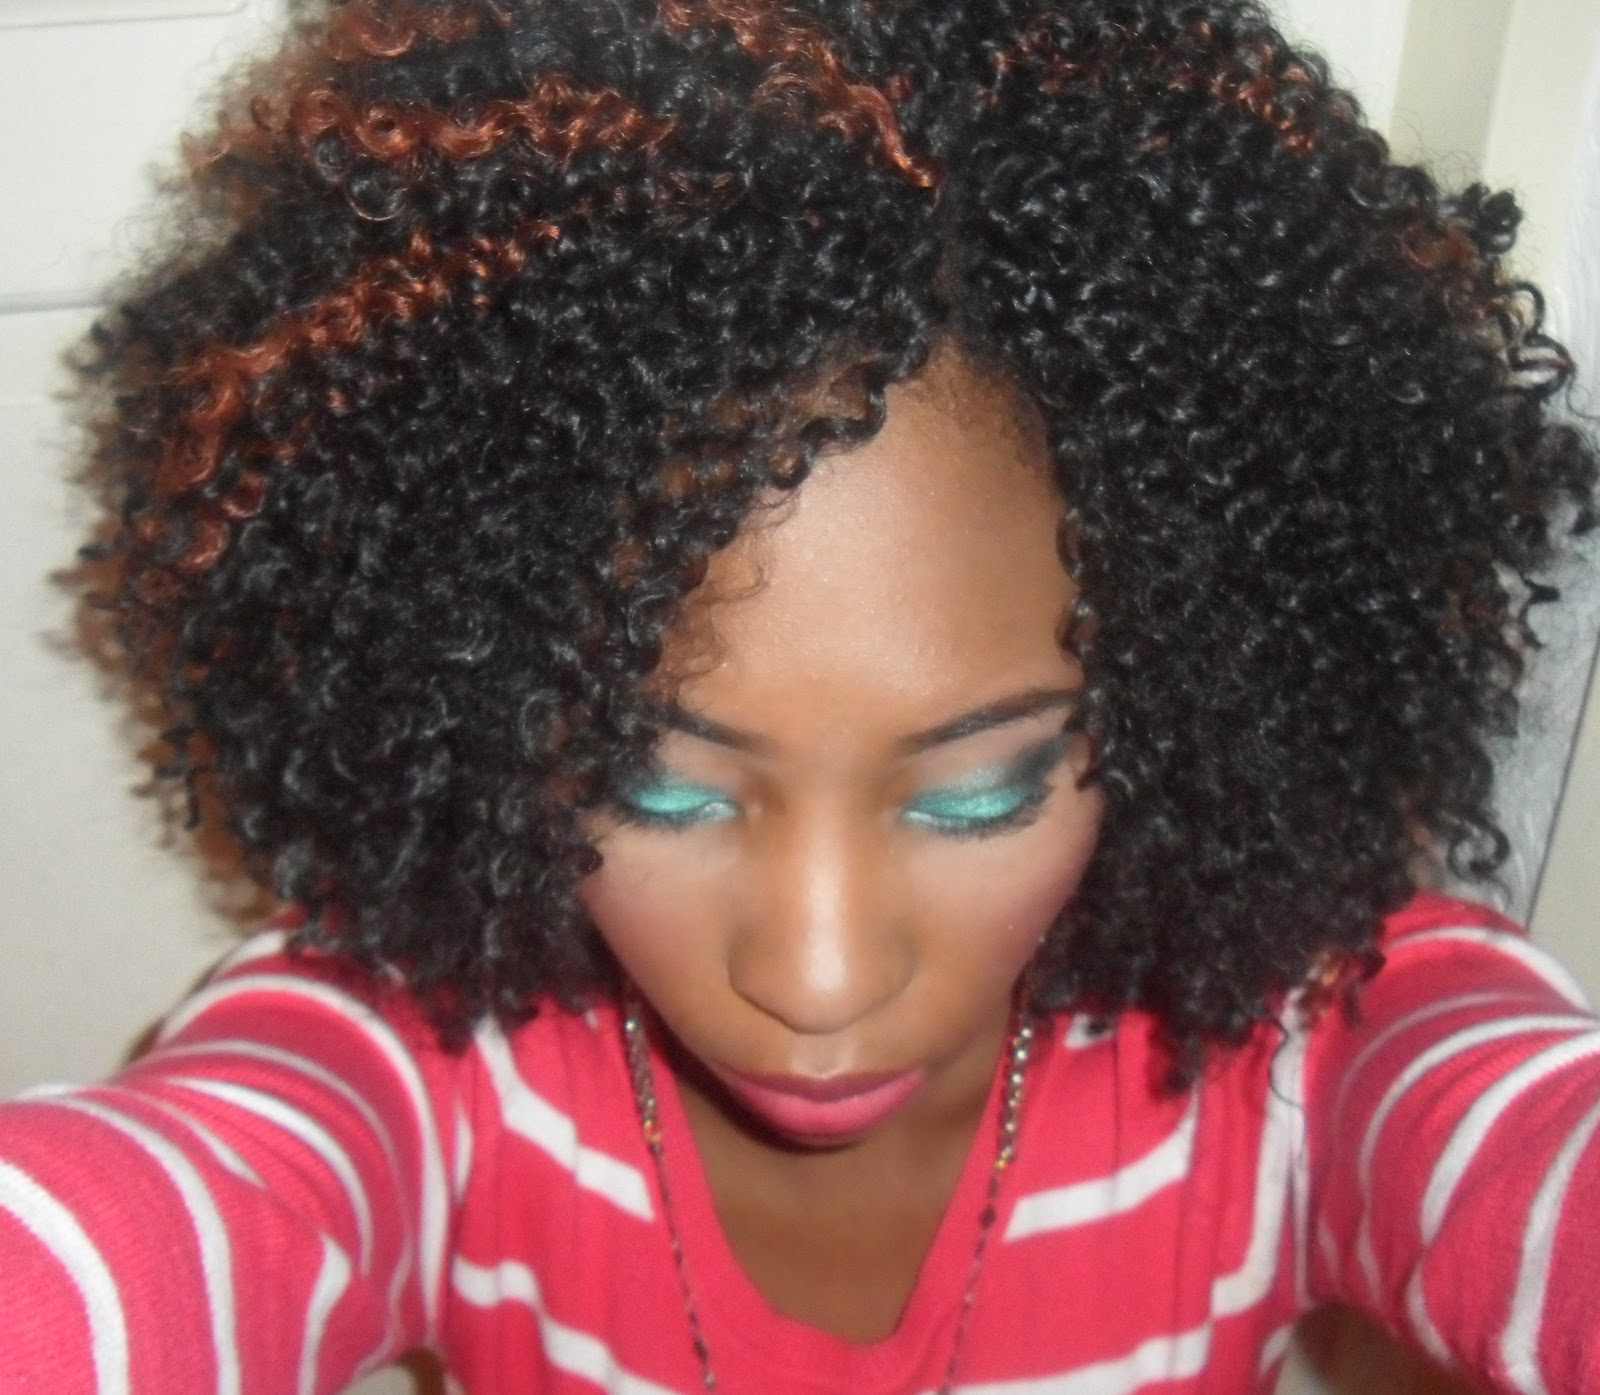 Quick Crochet Hair : If you are interested in learning how to do crochet braids, here is a ...